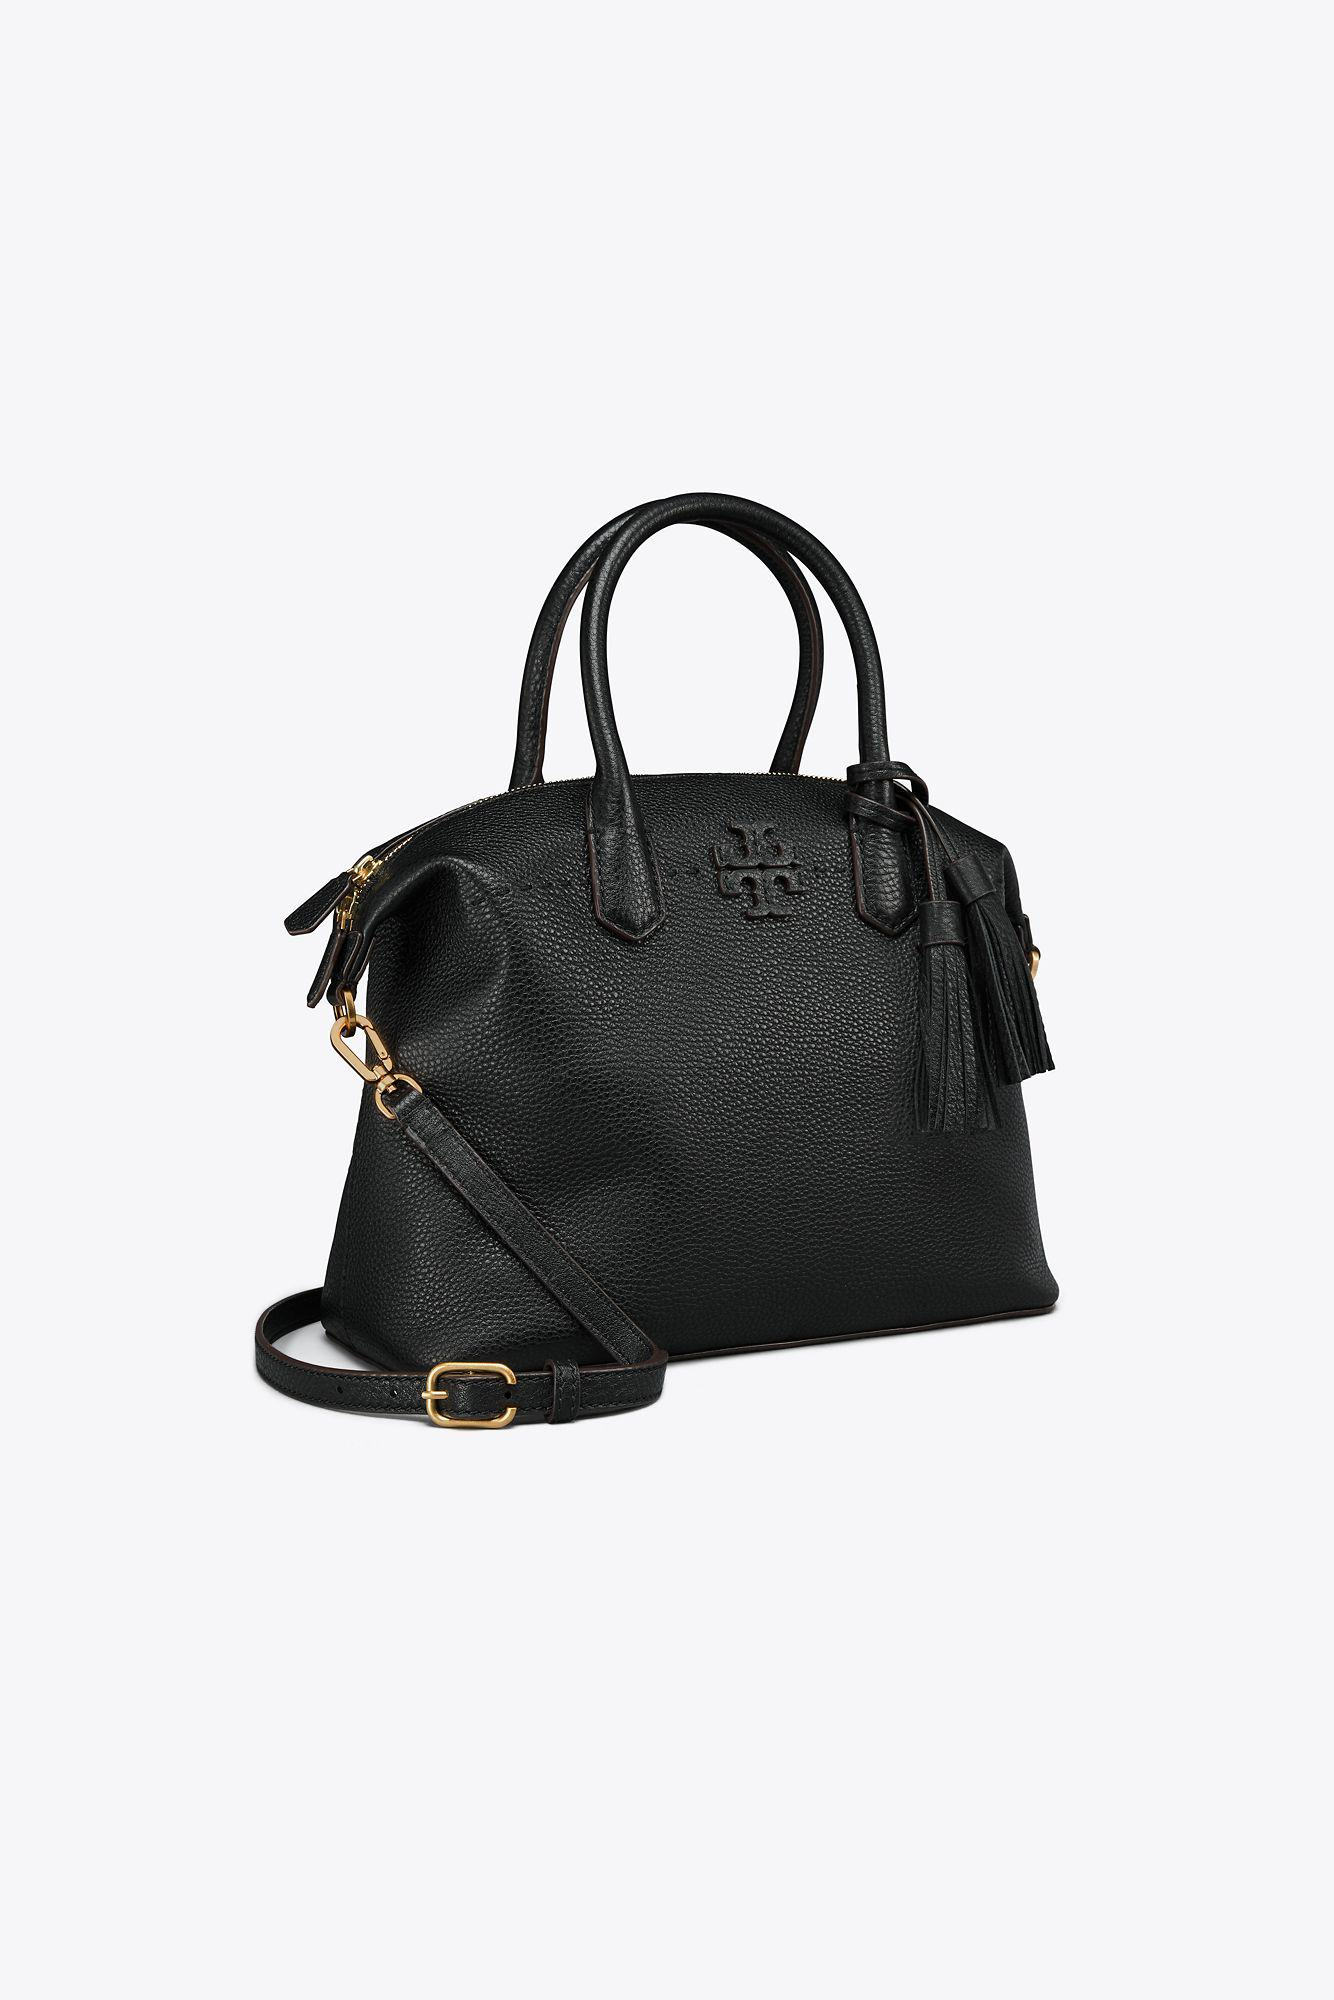 b8ae75e69498 Tory Burch Mcgraw Slouchy Leather Satchel - in Black - Save 19% - Lyst